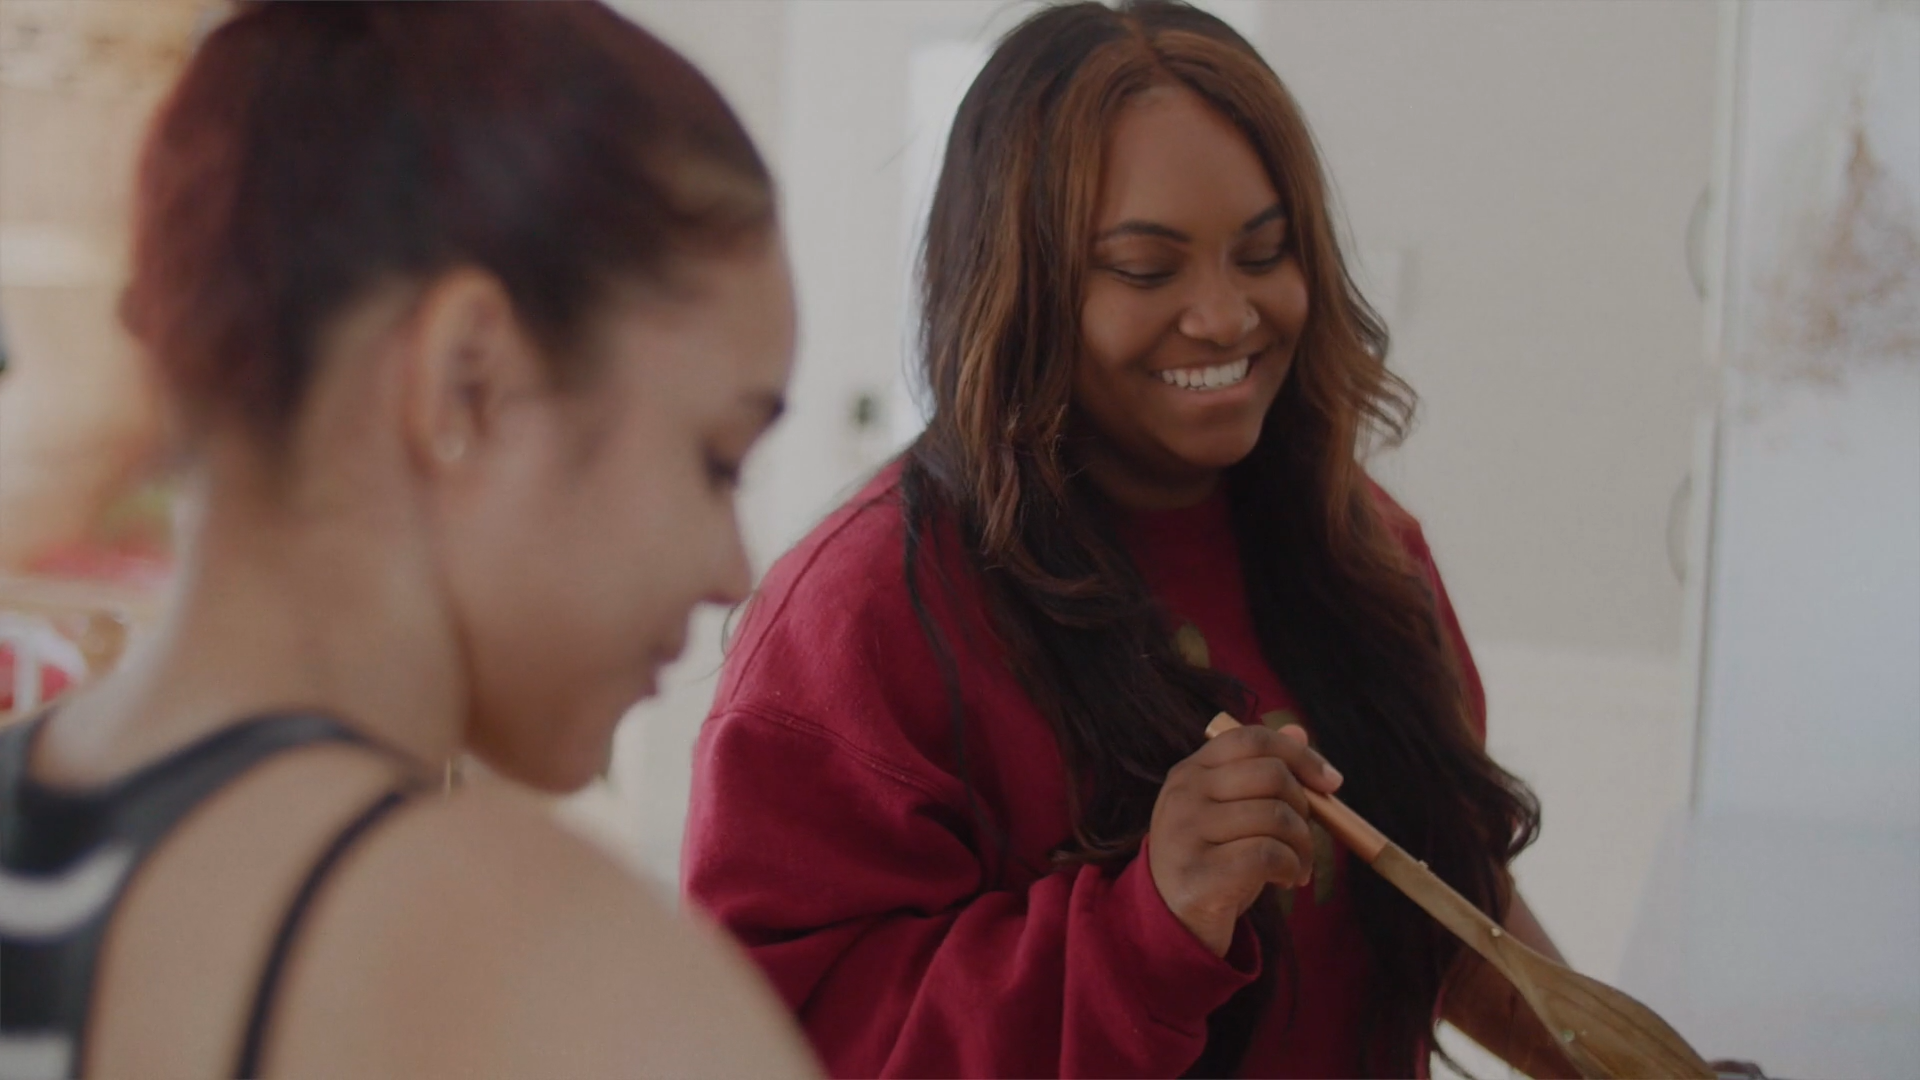 A screencap of Karmen with her former client Emmie    in our recent video    about Emmie's work with CFCS